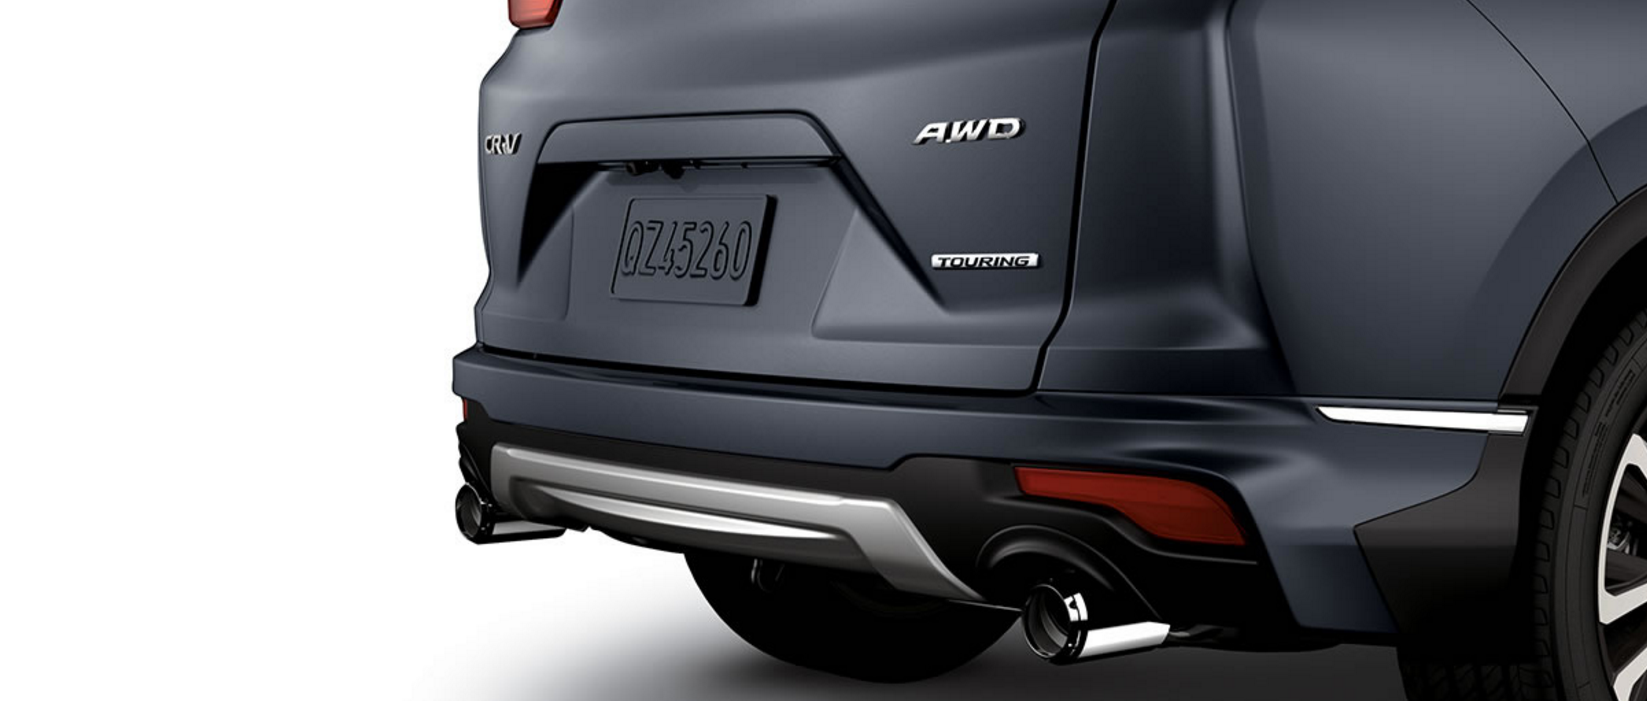 Valley Chevy - Top-Rated SUVs to Buy: Honda CR-V - Tailpipes